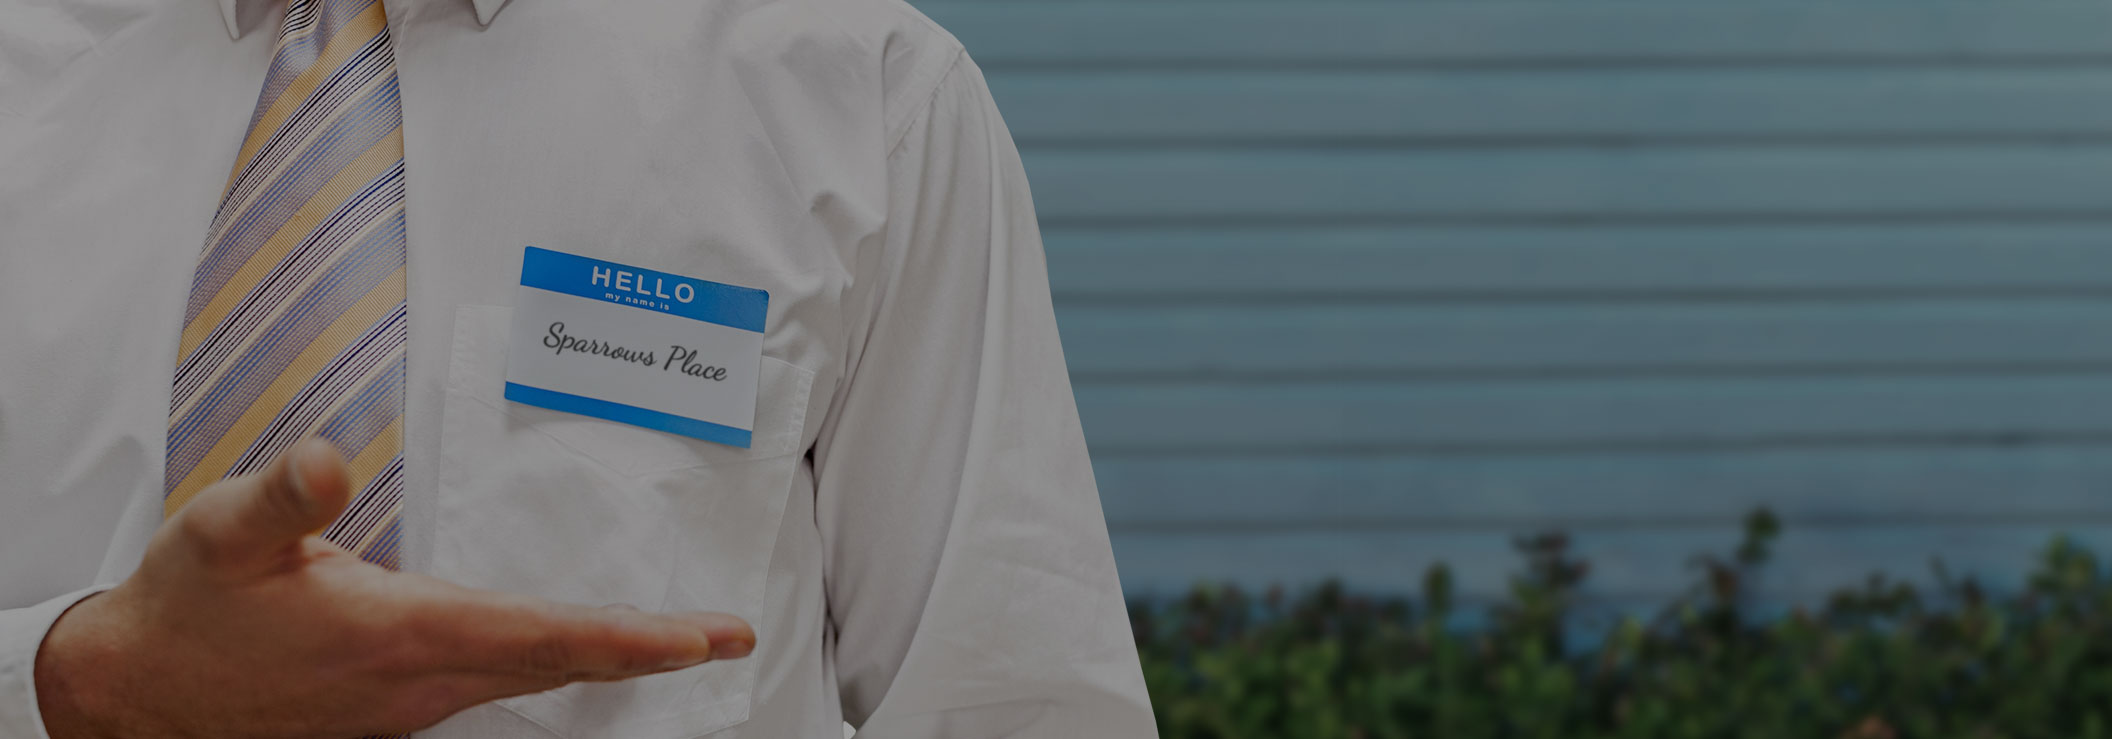 man's white business shirt with a nametag reading Sparows Place